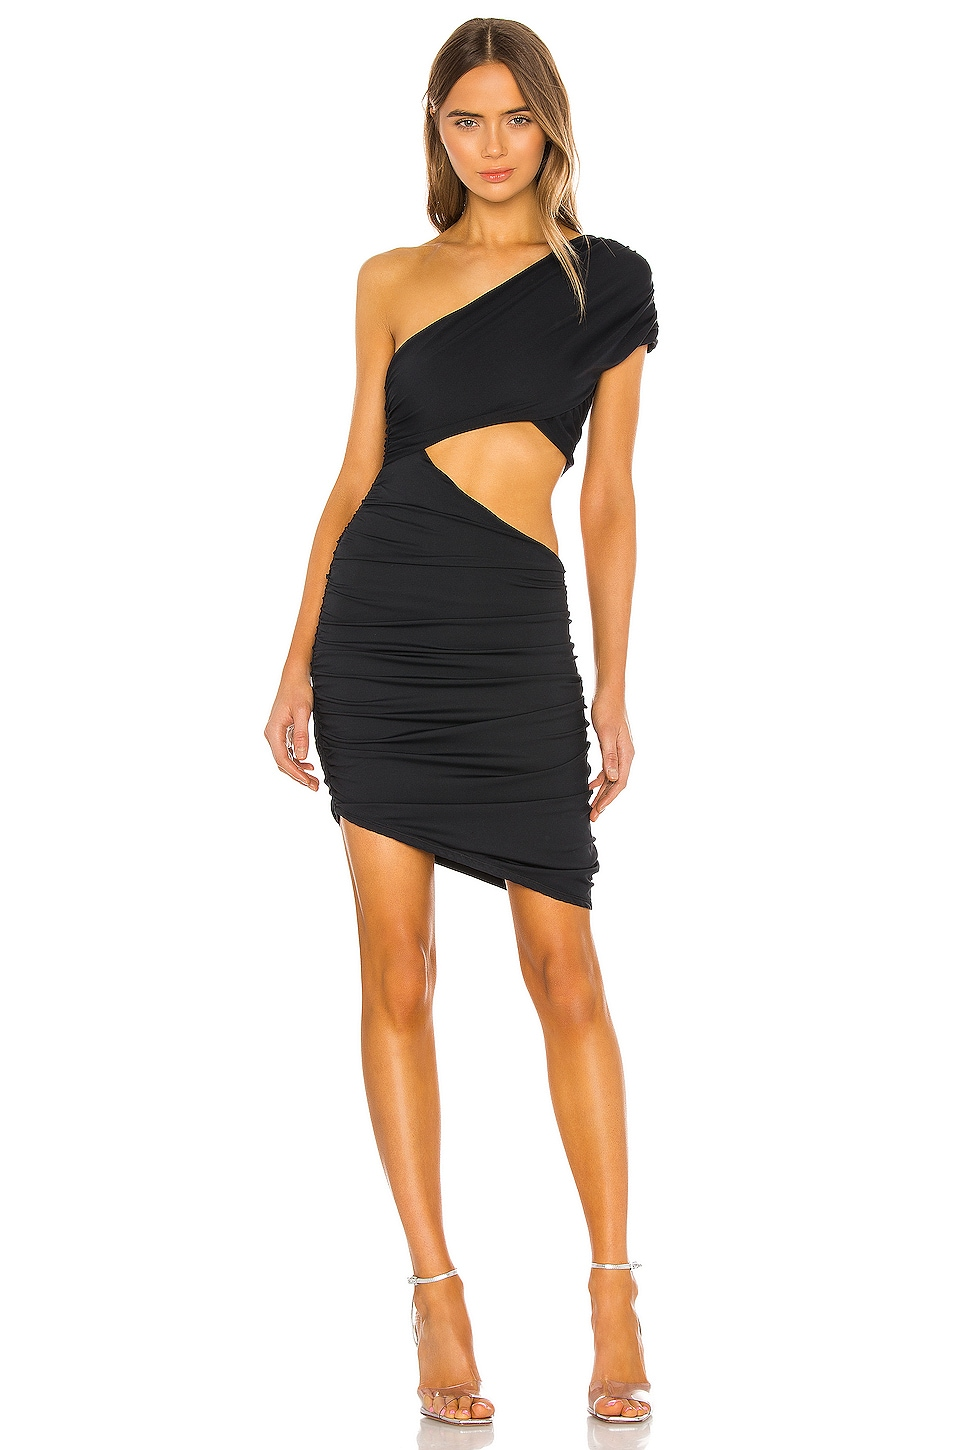 h:ours Charlize Mini Dress in Black